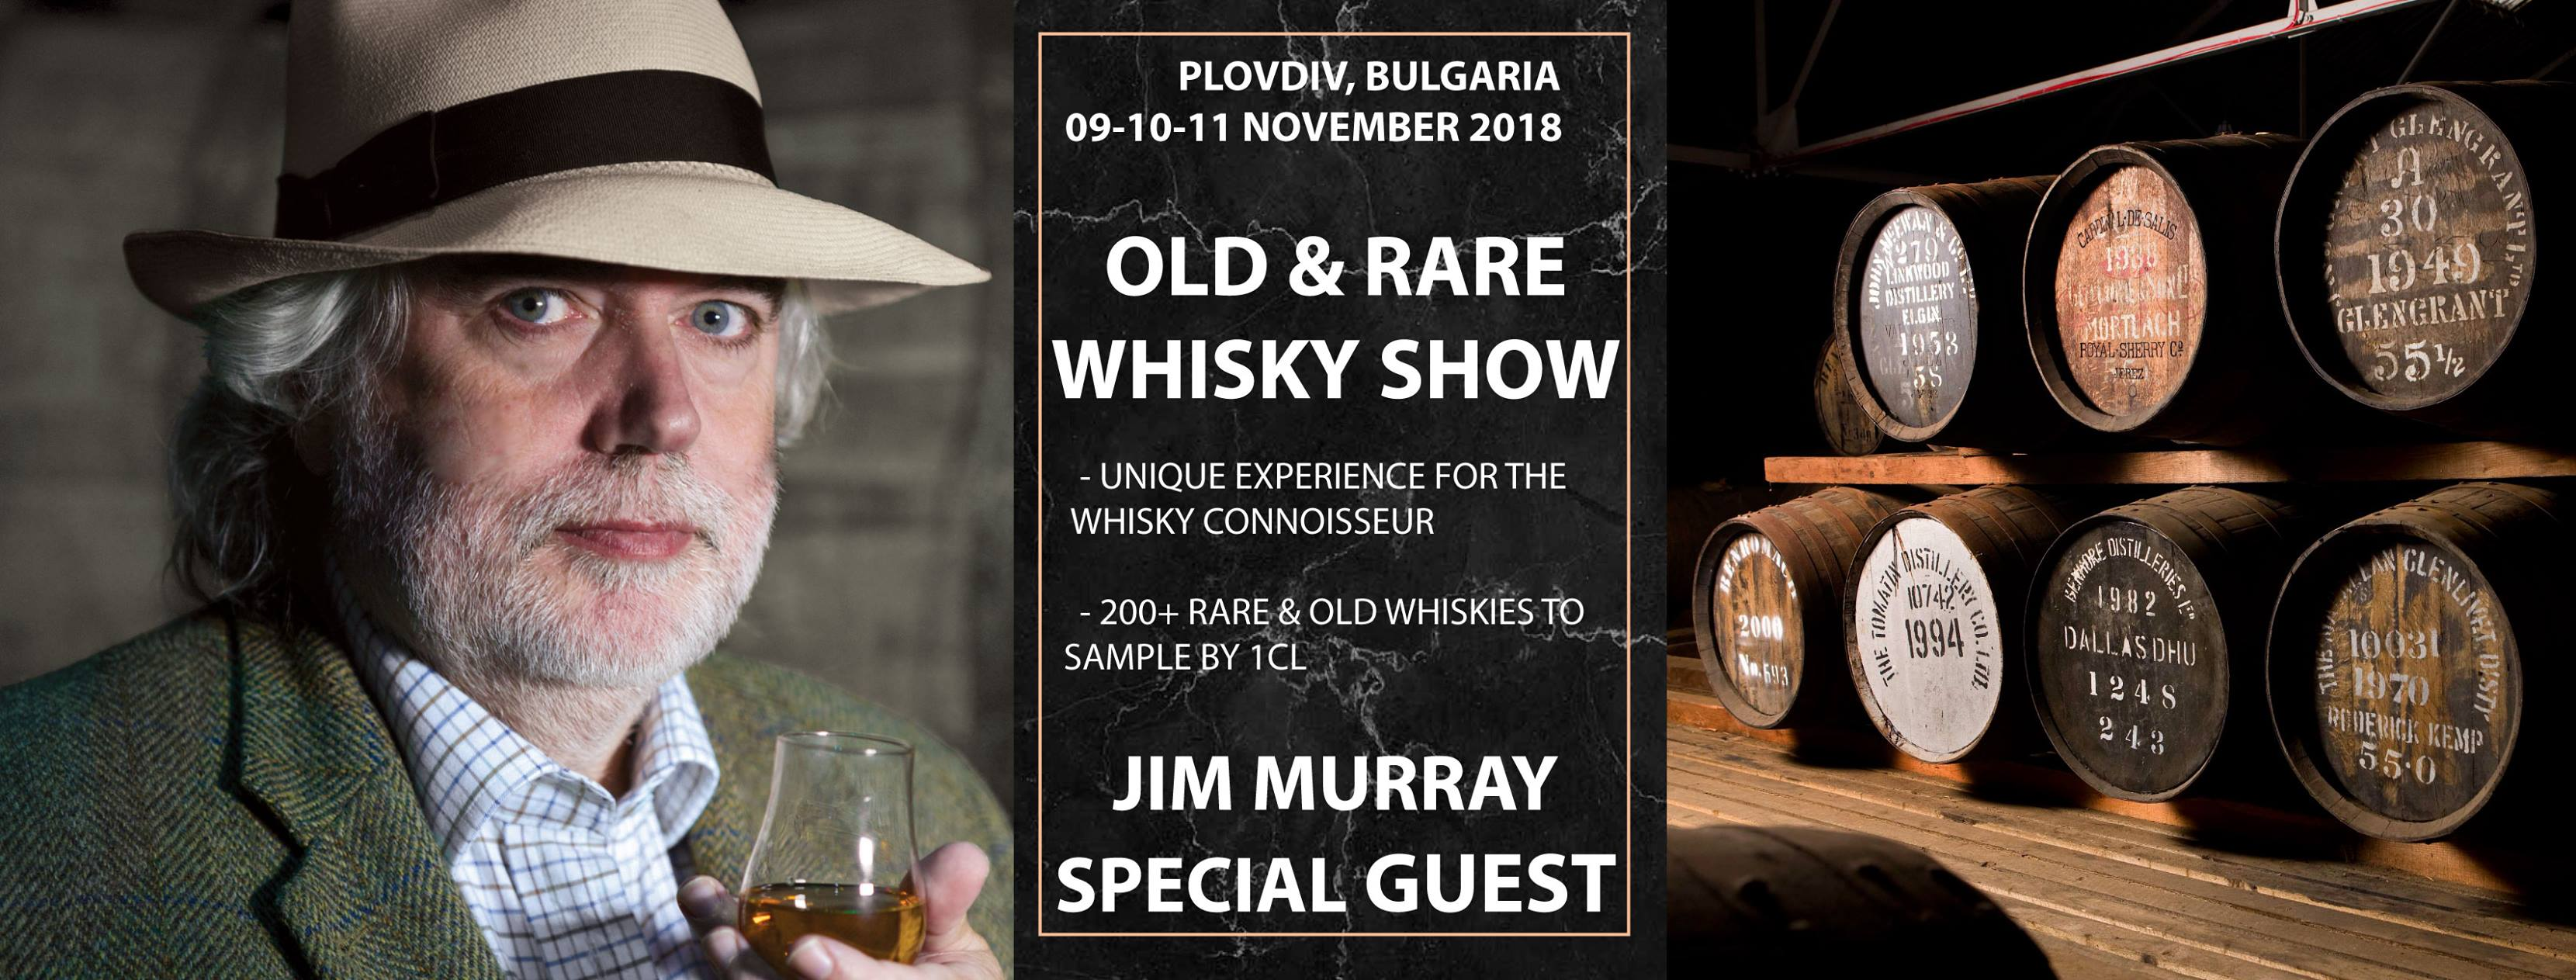 Whisky show FB